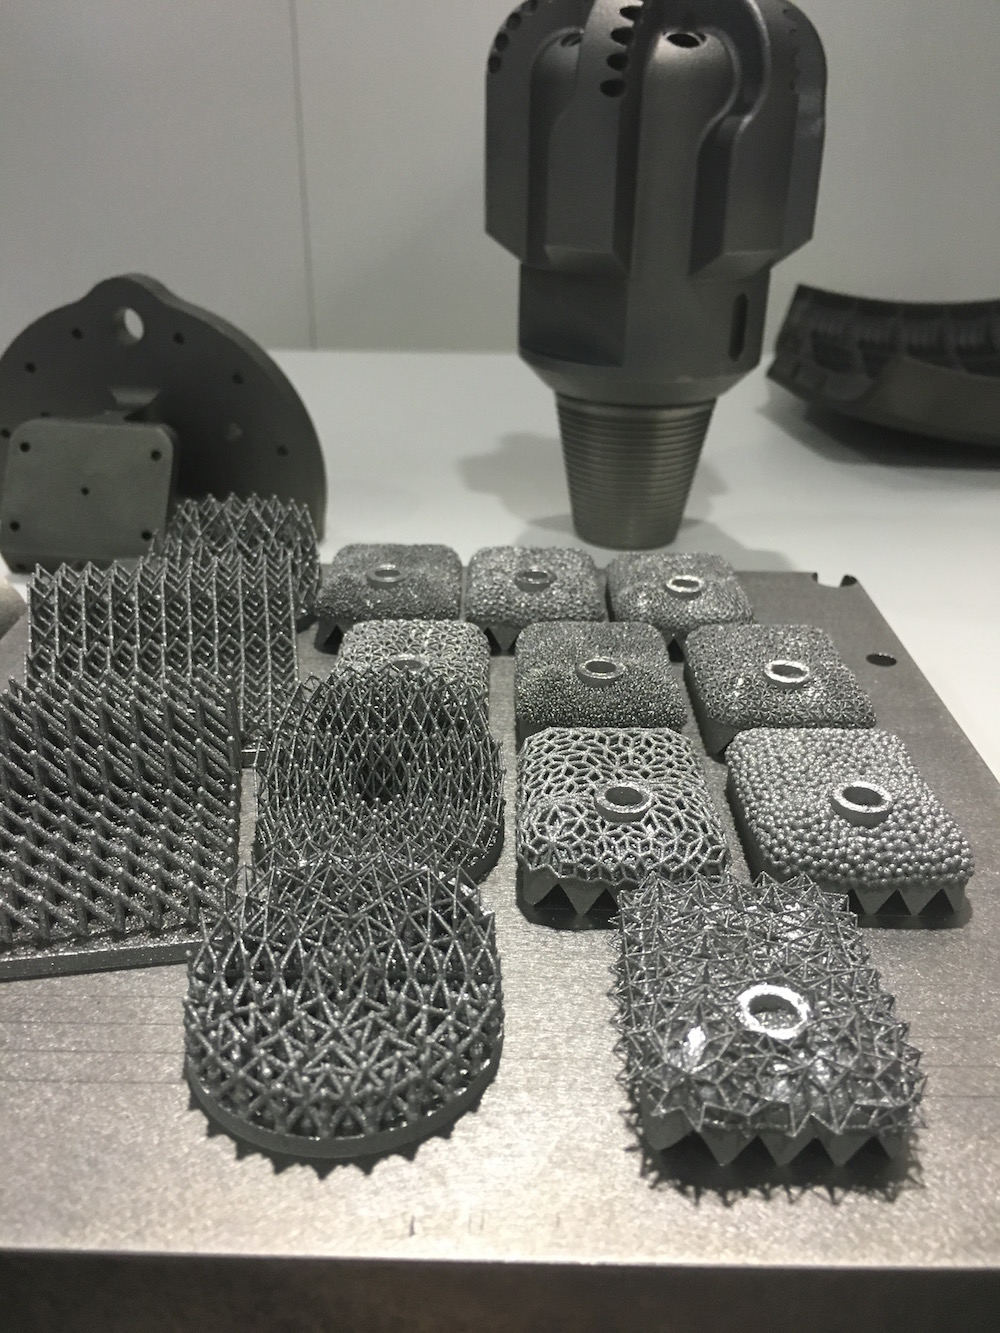 Sample metal parts produced by 3D Systems